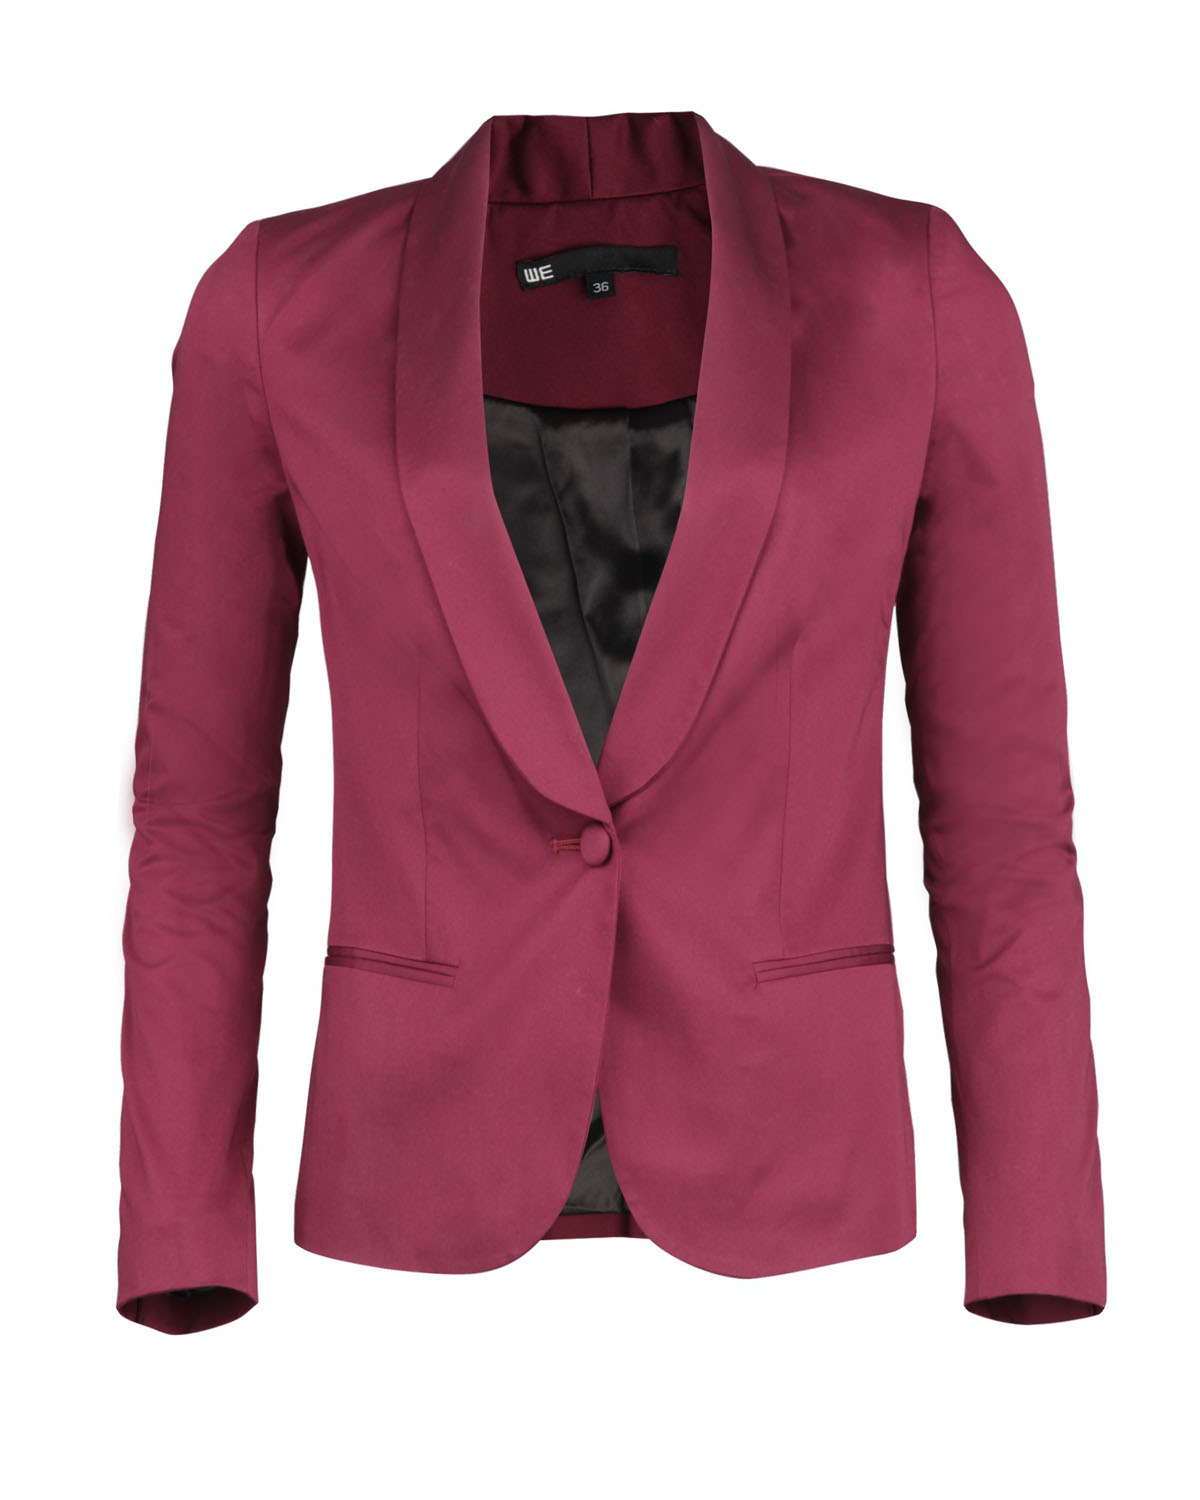 3473a7bdebe58 BLAZER FEMME   77169907 - WE Fashion